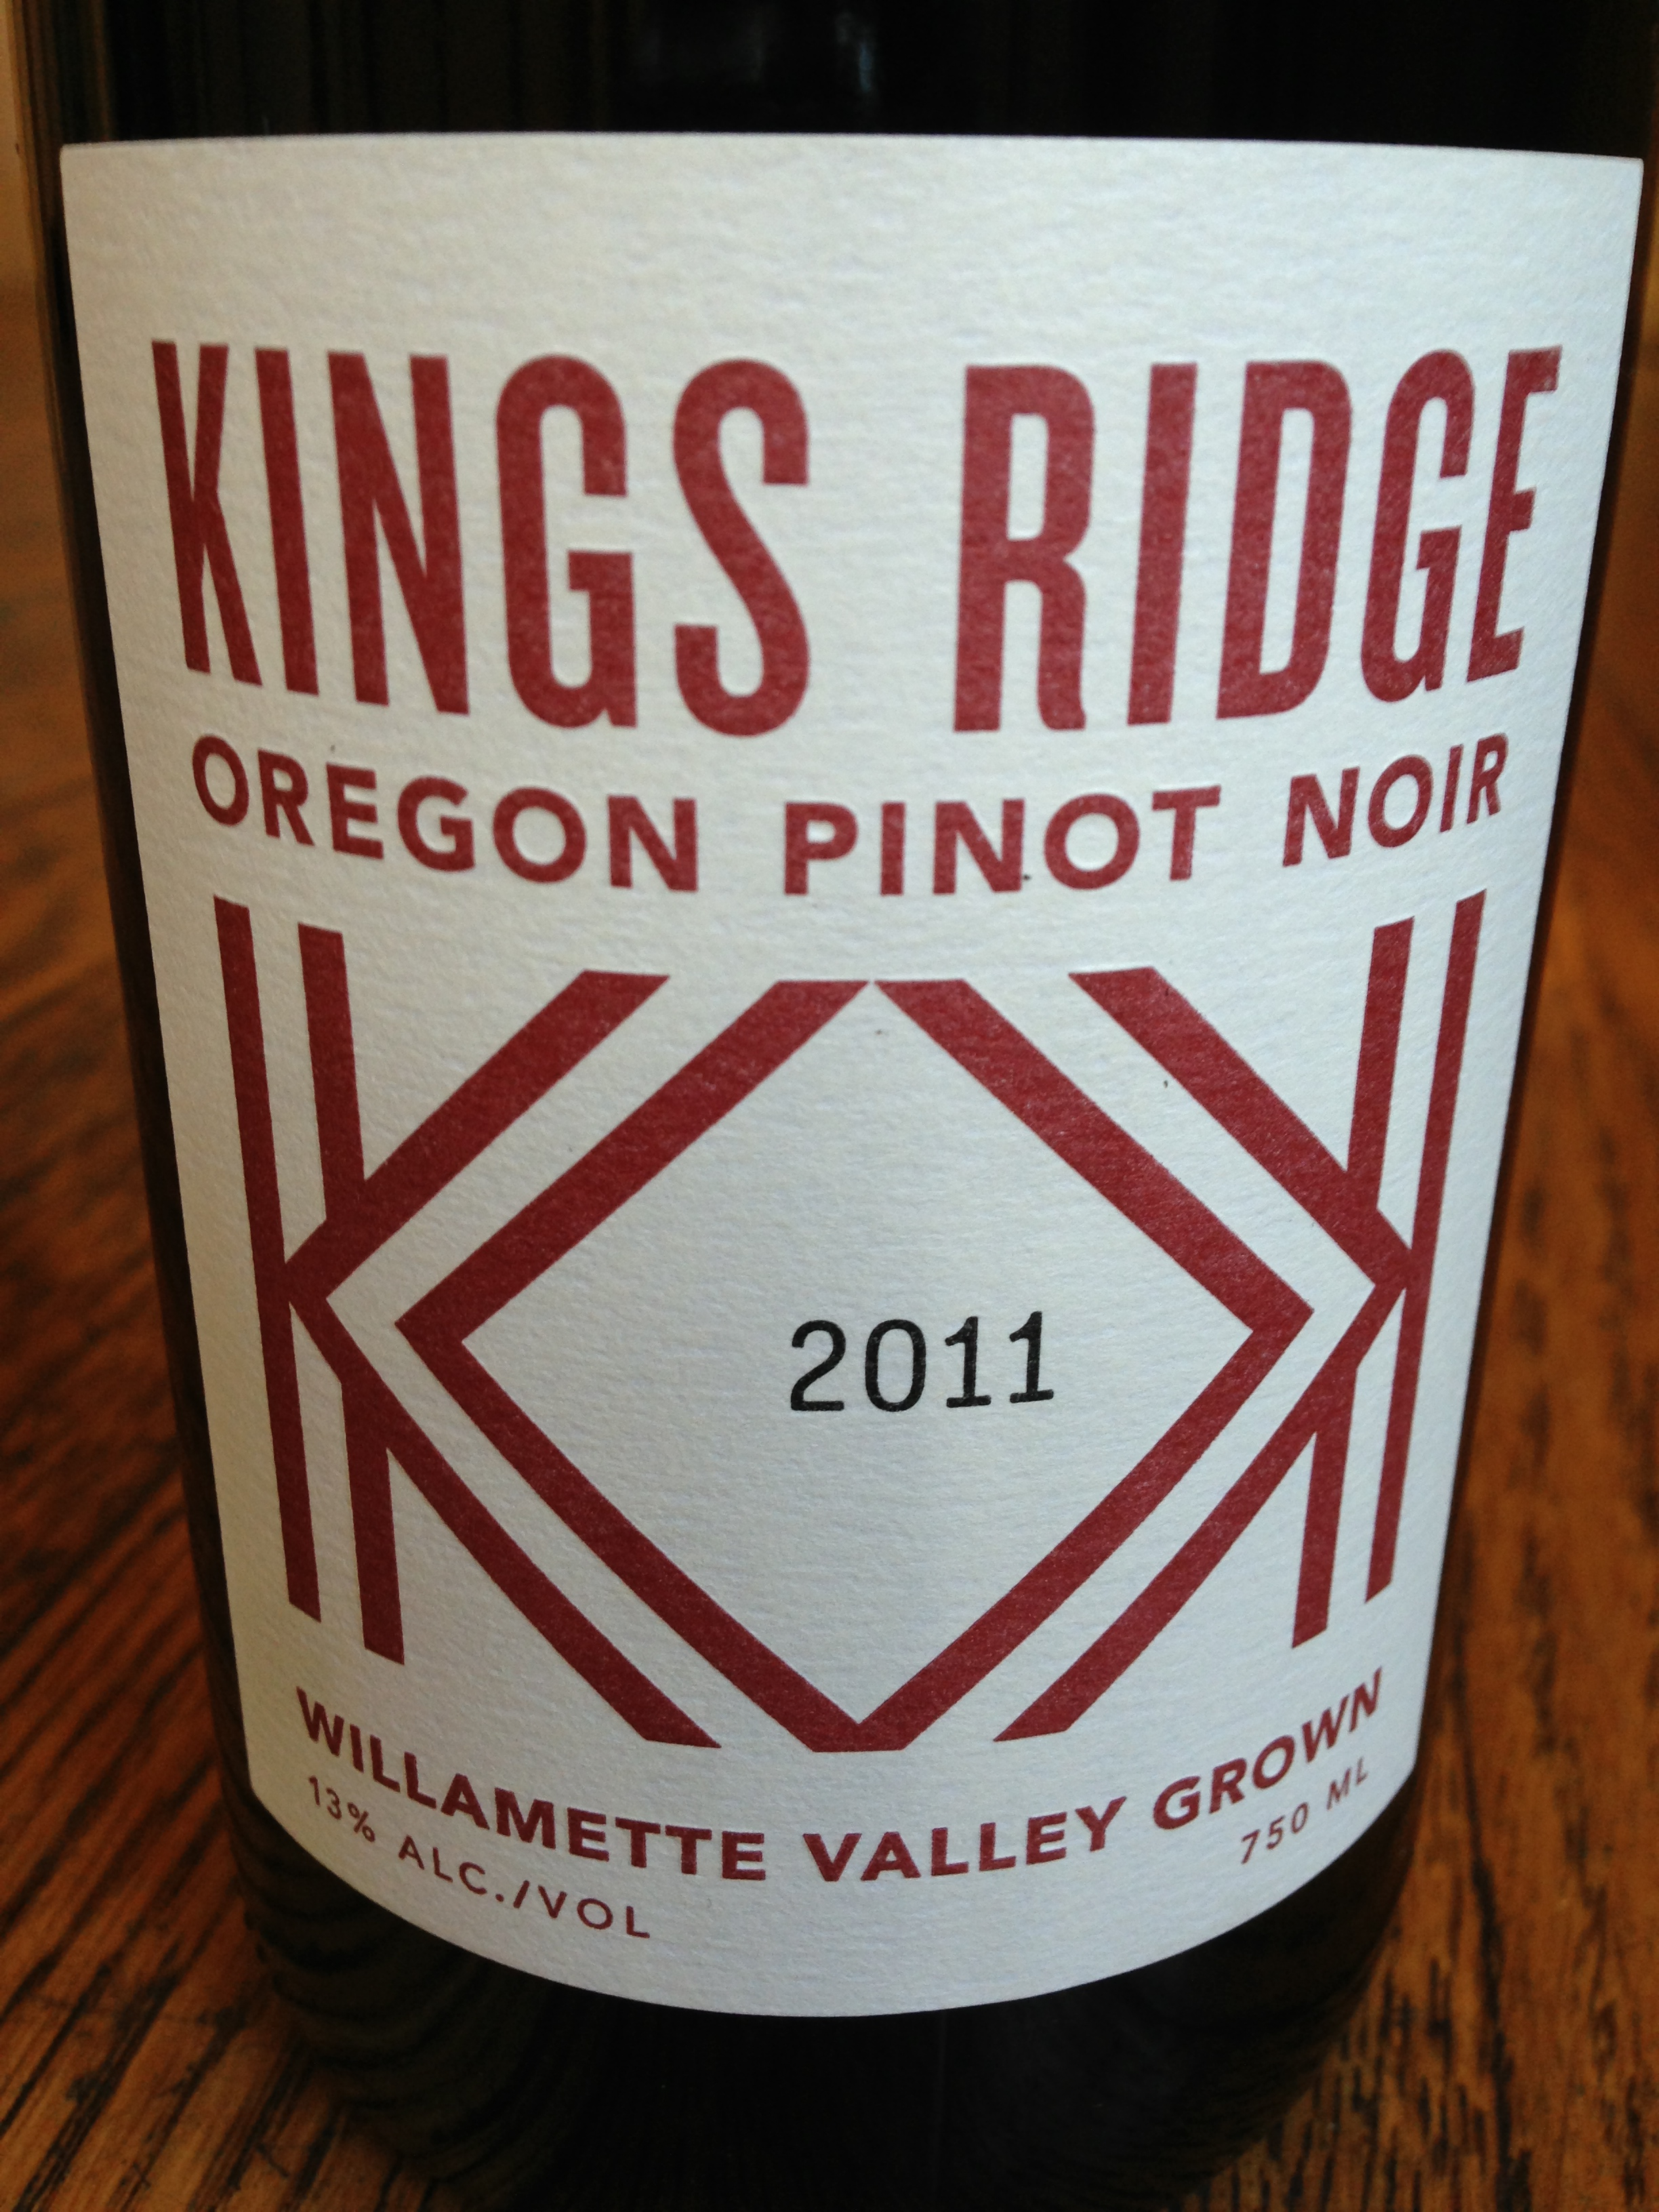 Kings ridge oregon pinot noir 2011 willamette valley